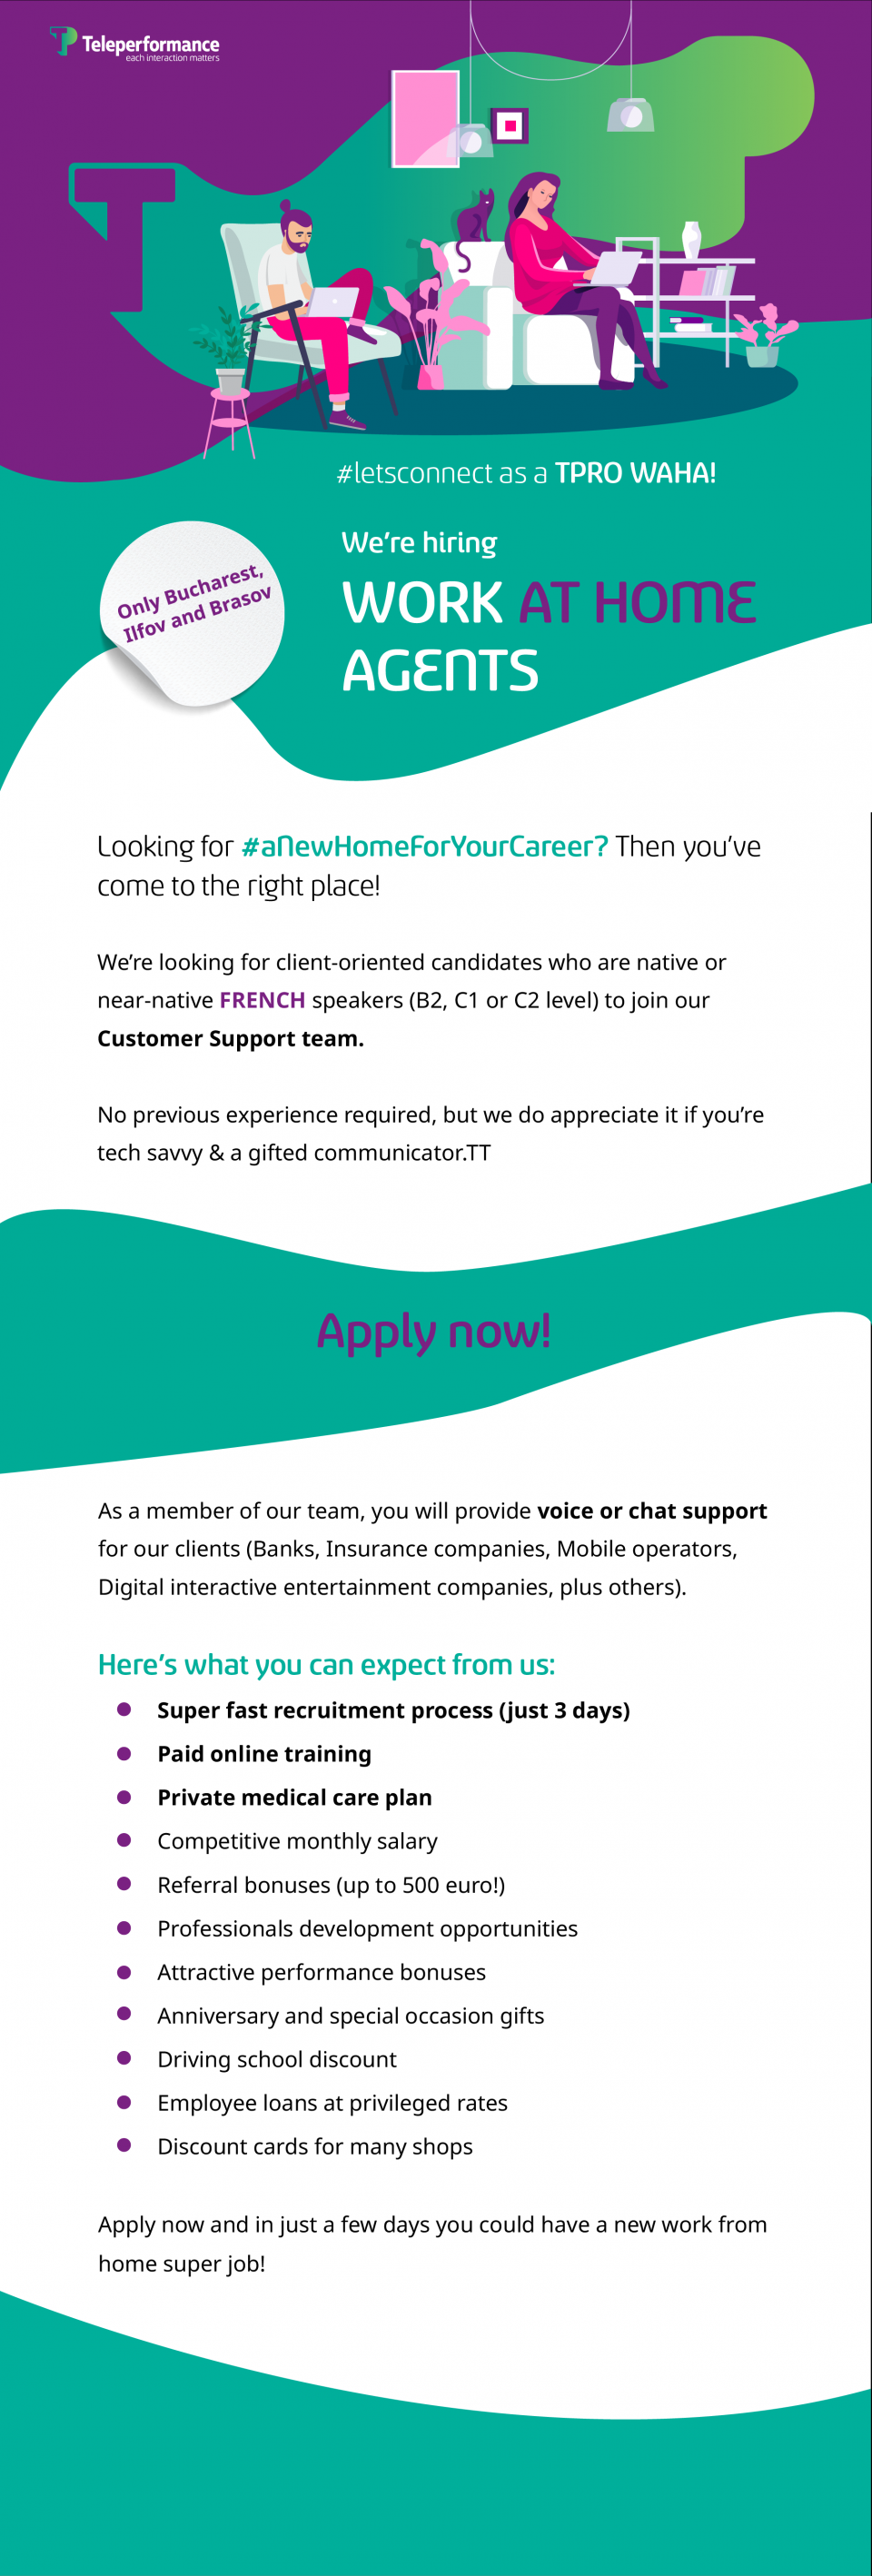 #letsconnect as a TPRO WAHA!  We're hiring Work AT HOME Agents Looking for #aNewHomeForYourCareer? Then you've come to the right place! We're looking for client-oriented candidates who are native or near-native FRENCH speakers (B2, C1 or C2 level) to join our Customer Support team.  No previous experience required, but we do appreciate it if you're tech savvy & a gifted communicator. Apply now!  As a member of our team, you will provide voice or chat support for our clients (Banks, Insurance companies, Mobile operators, Digital interactive entertainment companies, plus others). Here's what you can expect from us: ➔ Super-fast recruitment process ➔ Competitive monthly salary ➔ Attractive performance bonuses ➔ Paid online training ➔ Referral bonuses (up to 500 euro!) ➔ Professionals development opportunities ➔ Private medical insurance ➔ Anniversary and special occasion gifts ➔ Driving school discount ➔ Employee loans at privileged rates ➔ Discount cards for many shops Apply now and in just a few days you could have a new work from home super job!